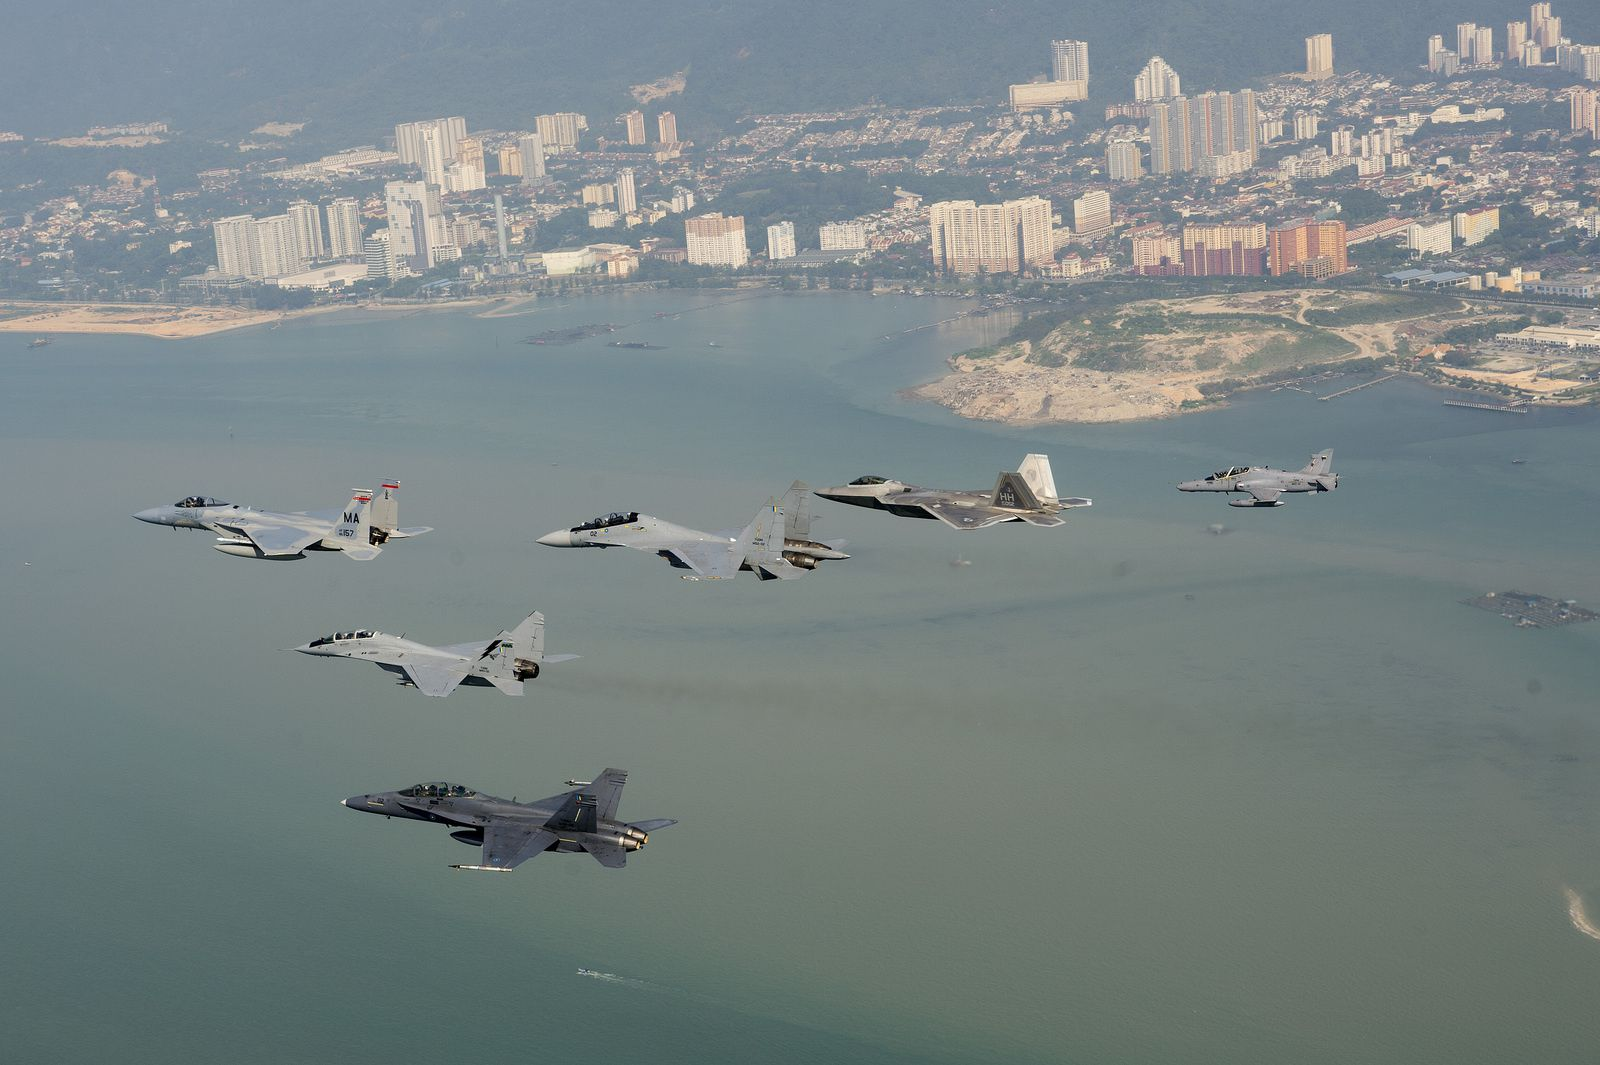 © USAF - Pendant l'exercice COPE TAUFAN 2014, formation d'un F-15C Eagle et F-22 Raptor de l'US Air Force, accompagnés par un F/A-18D Hornet, MIG-29N Fulcrum, Hawk 208 et un Su-30MKM de la Force Aérienne Royale Malaysienne.